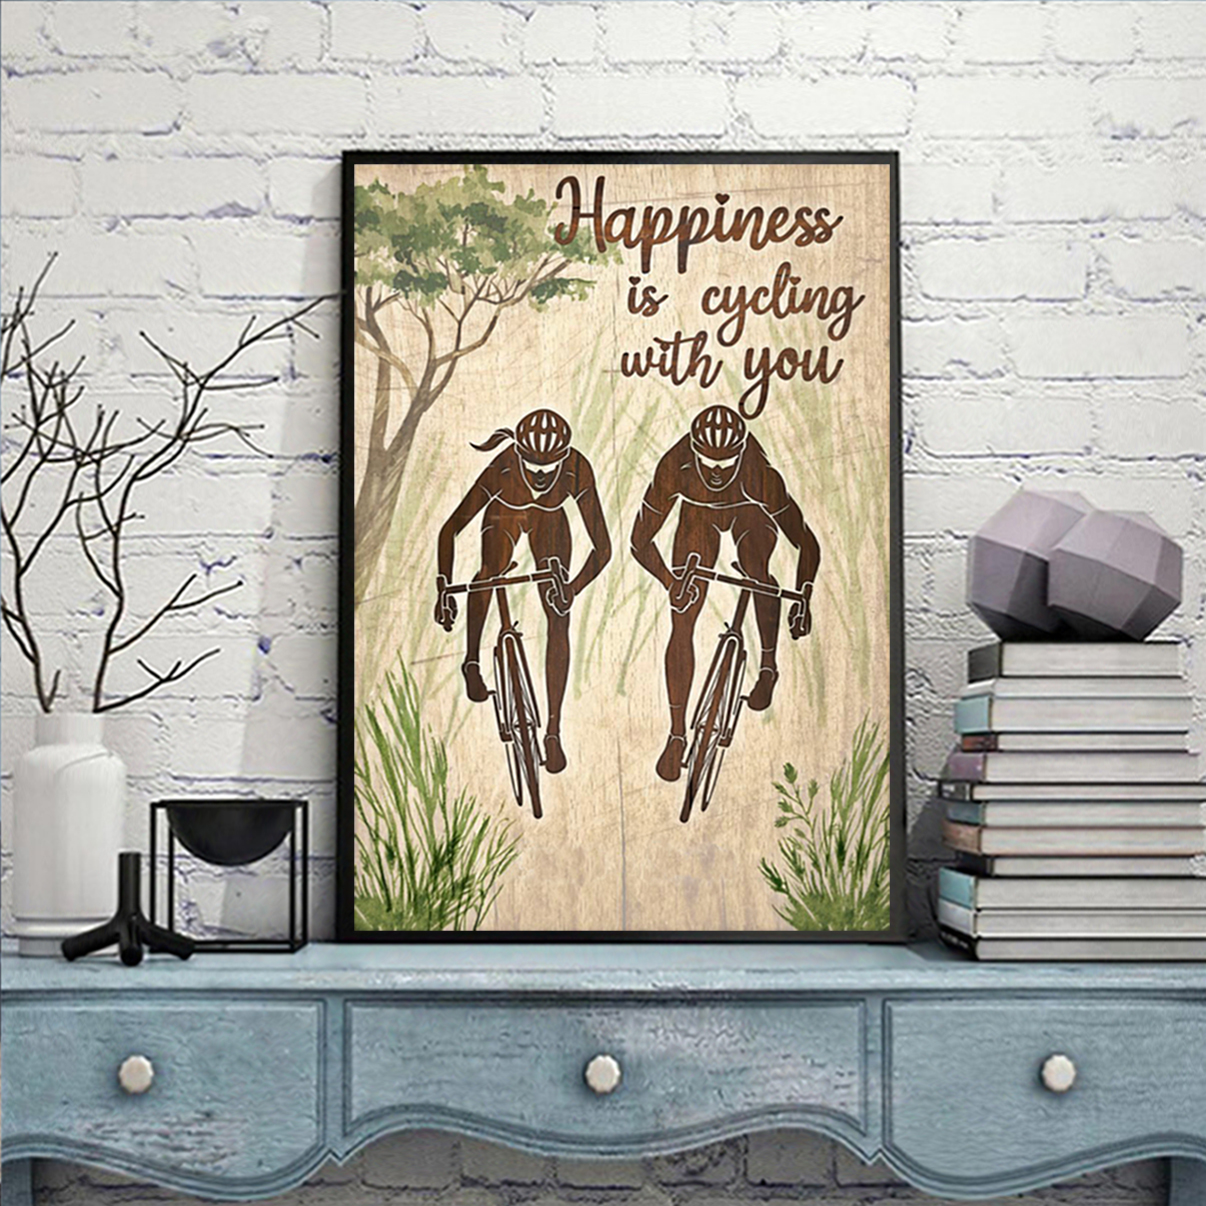 Personalized happiness is cycling with you poster A2